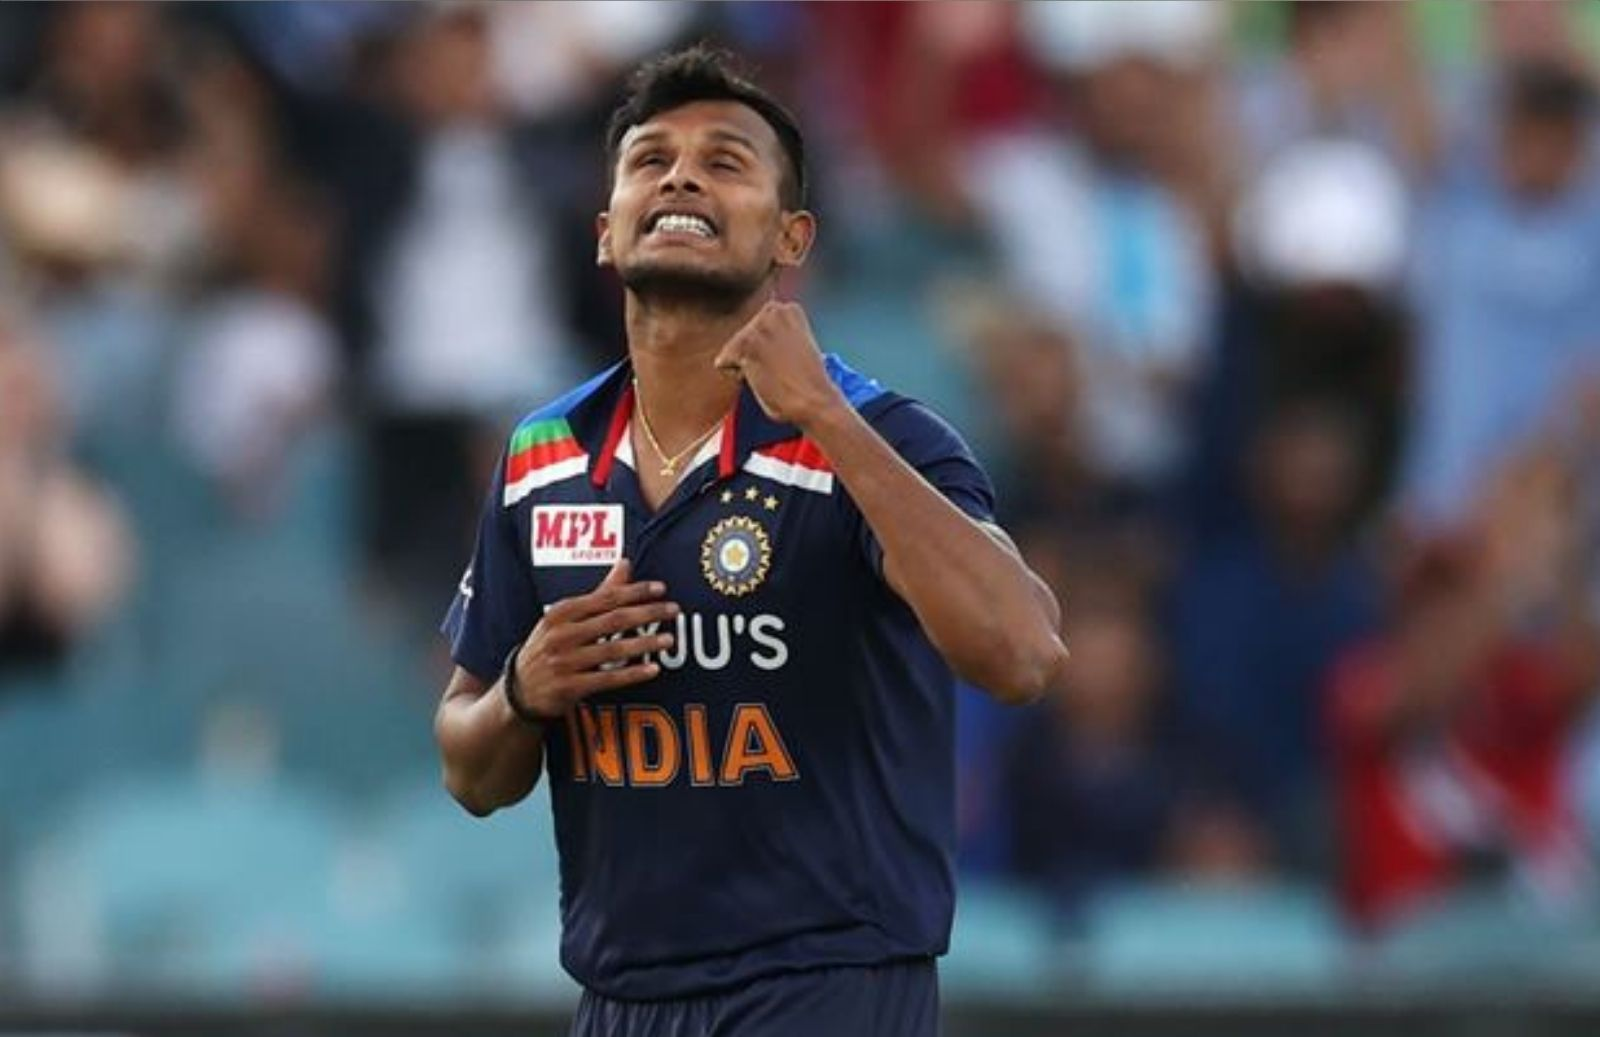 T Natarajan Hints On Making His Test Debut In Sydney, Shares A 'Proud Moment' Post On Social Media